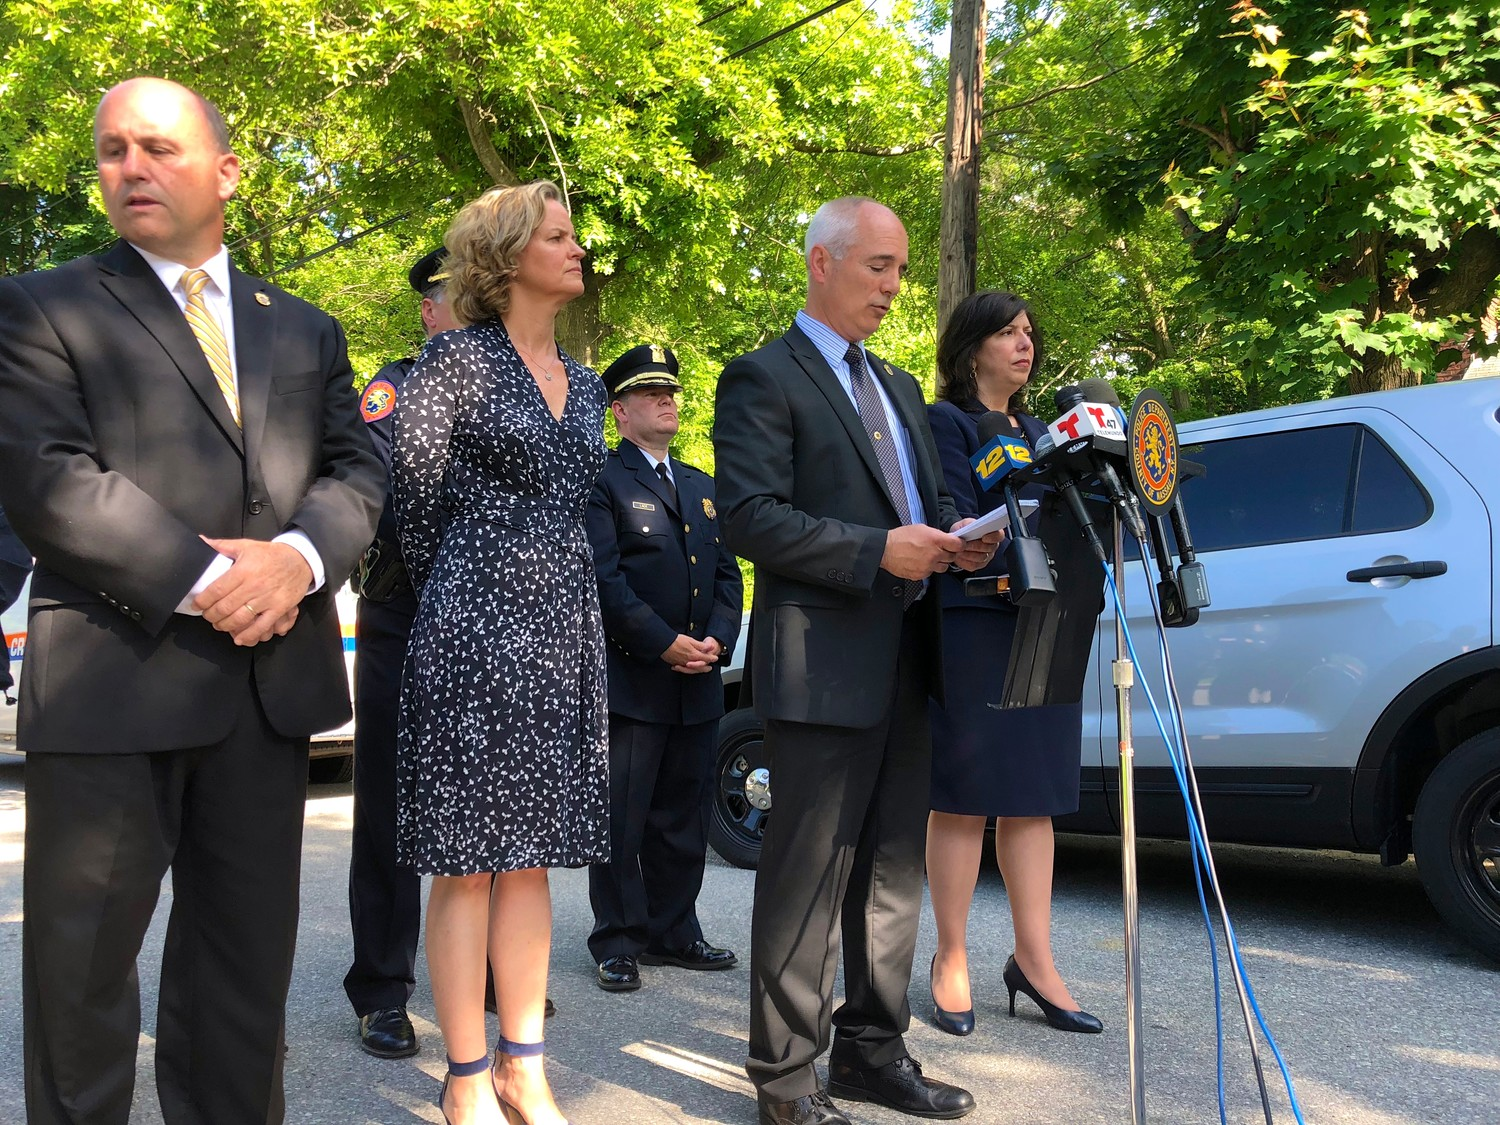 Nassau County officials held a news conference at the east end of Federick Avenue in Roosevelt to announce that they had found a fifth body allegedly killed by the El Salvadoran gang MS-13. At the lectern was Detective Lt. Richard Lebrun. From left were Police Commissioner Patrick Ryder, County Executive Laura Curran and District Attorney Madeline Singas.